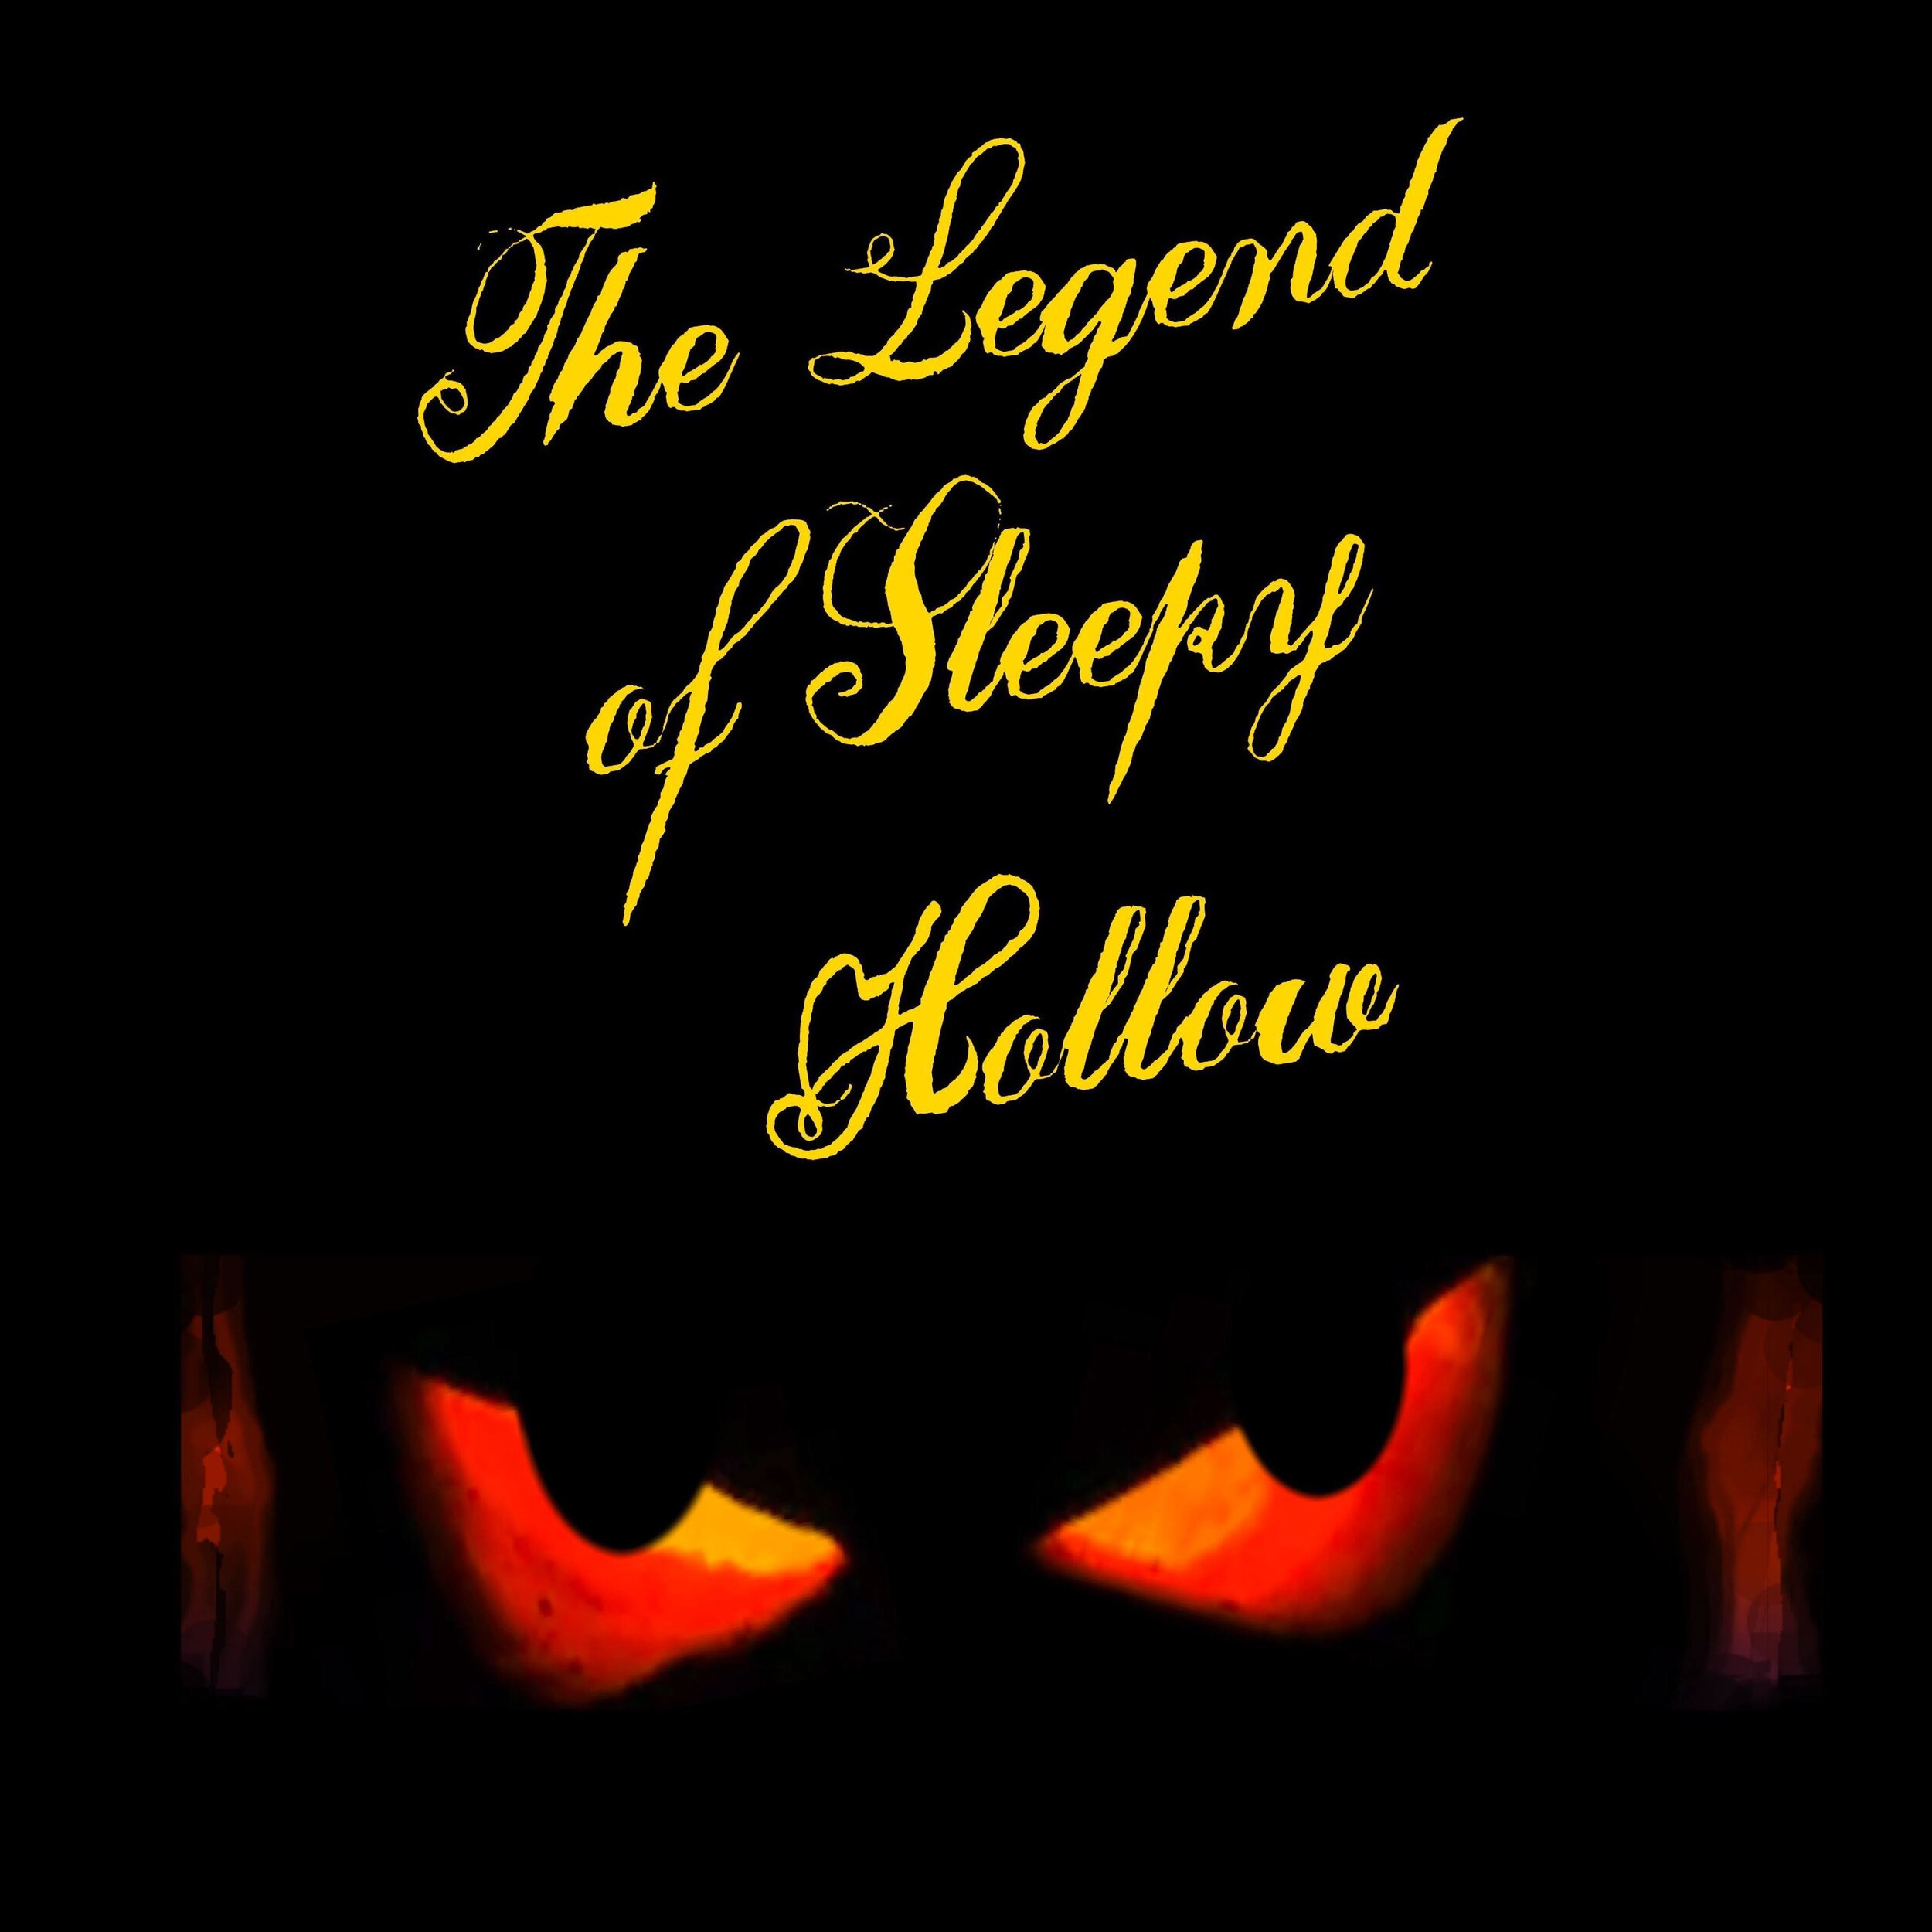 2020 Senior Company Fall Play - THE LEGEND OF SLEEPY HOLLOW Created by John Heimbuch & Jon FergusonAges 13-19Tuition $500By audition